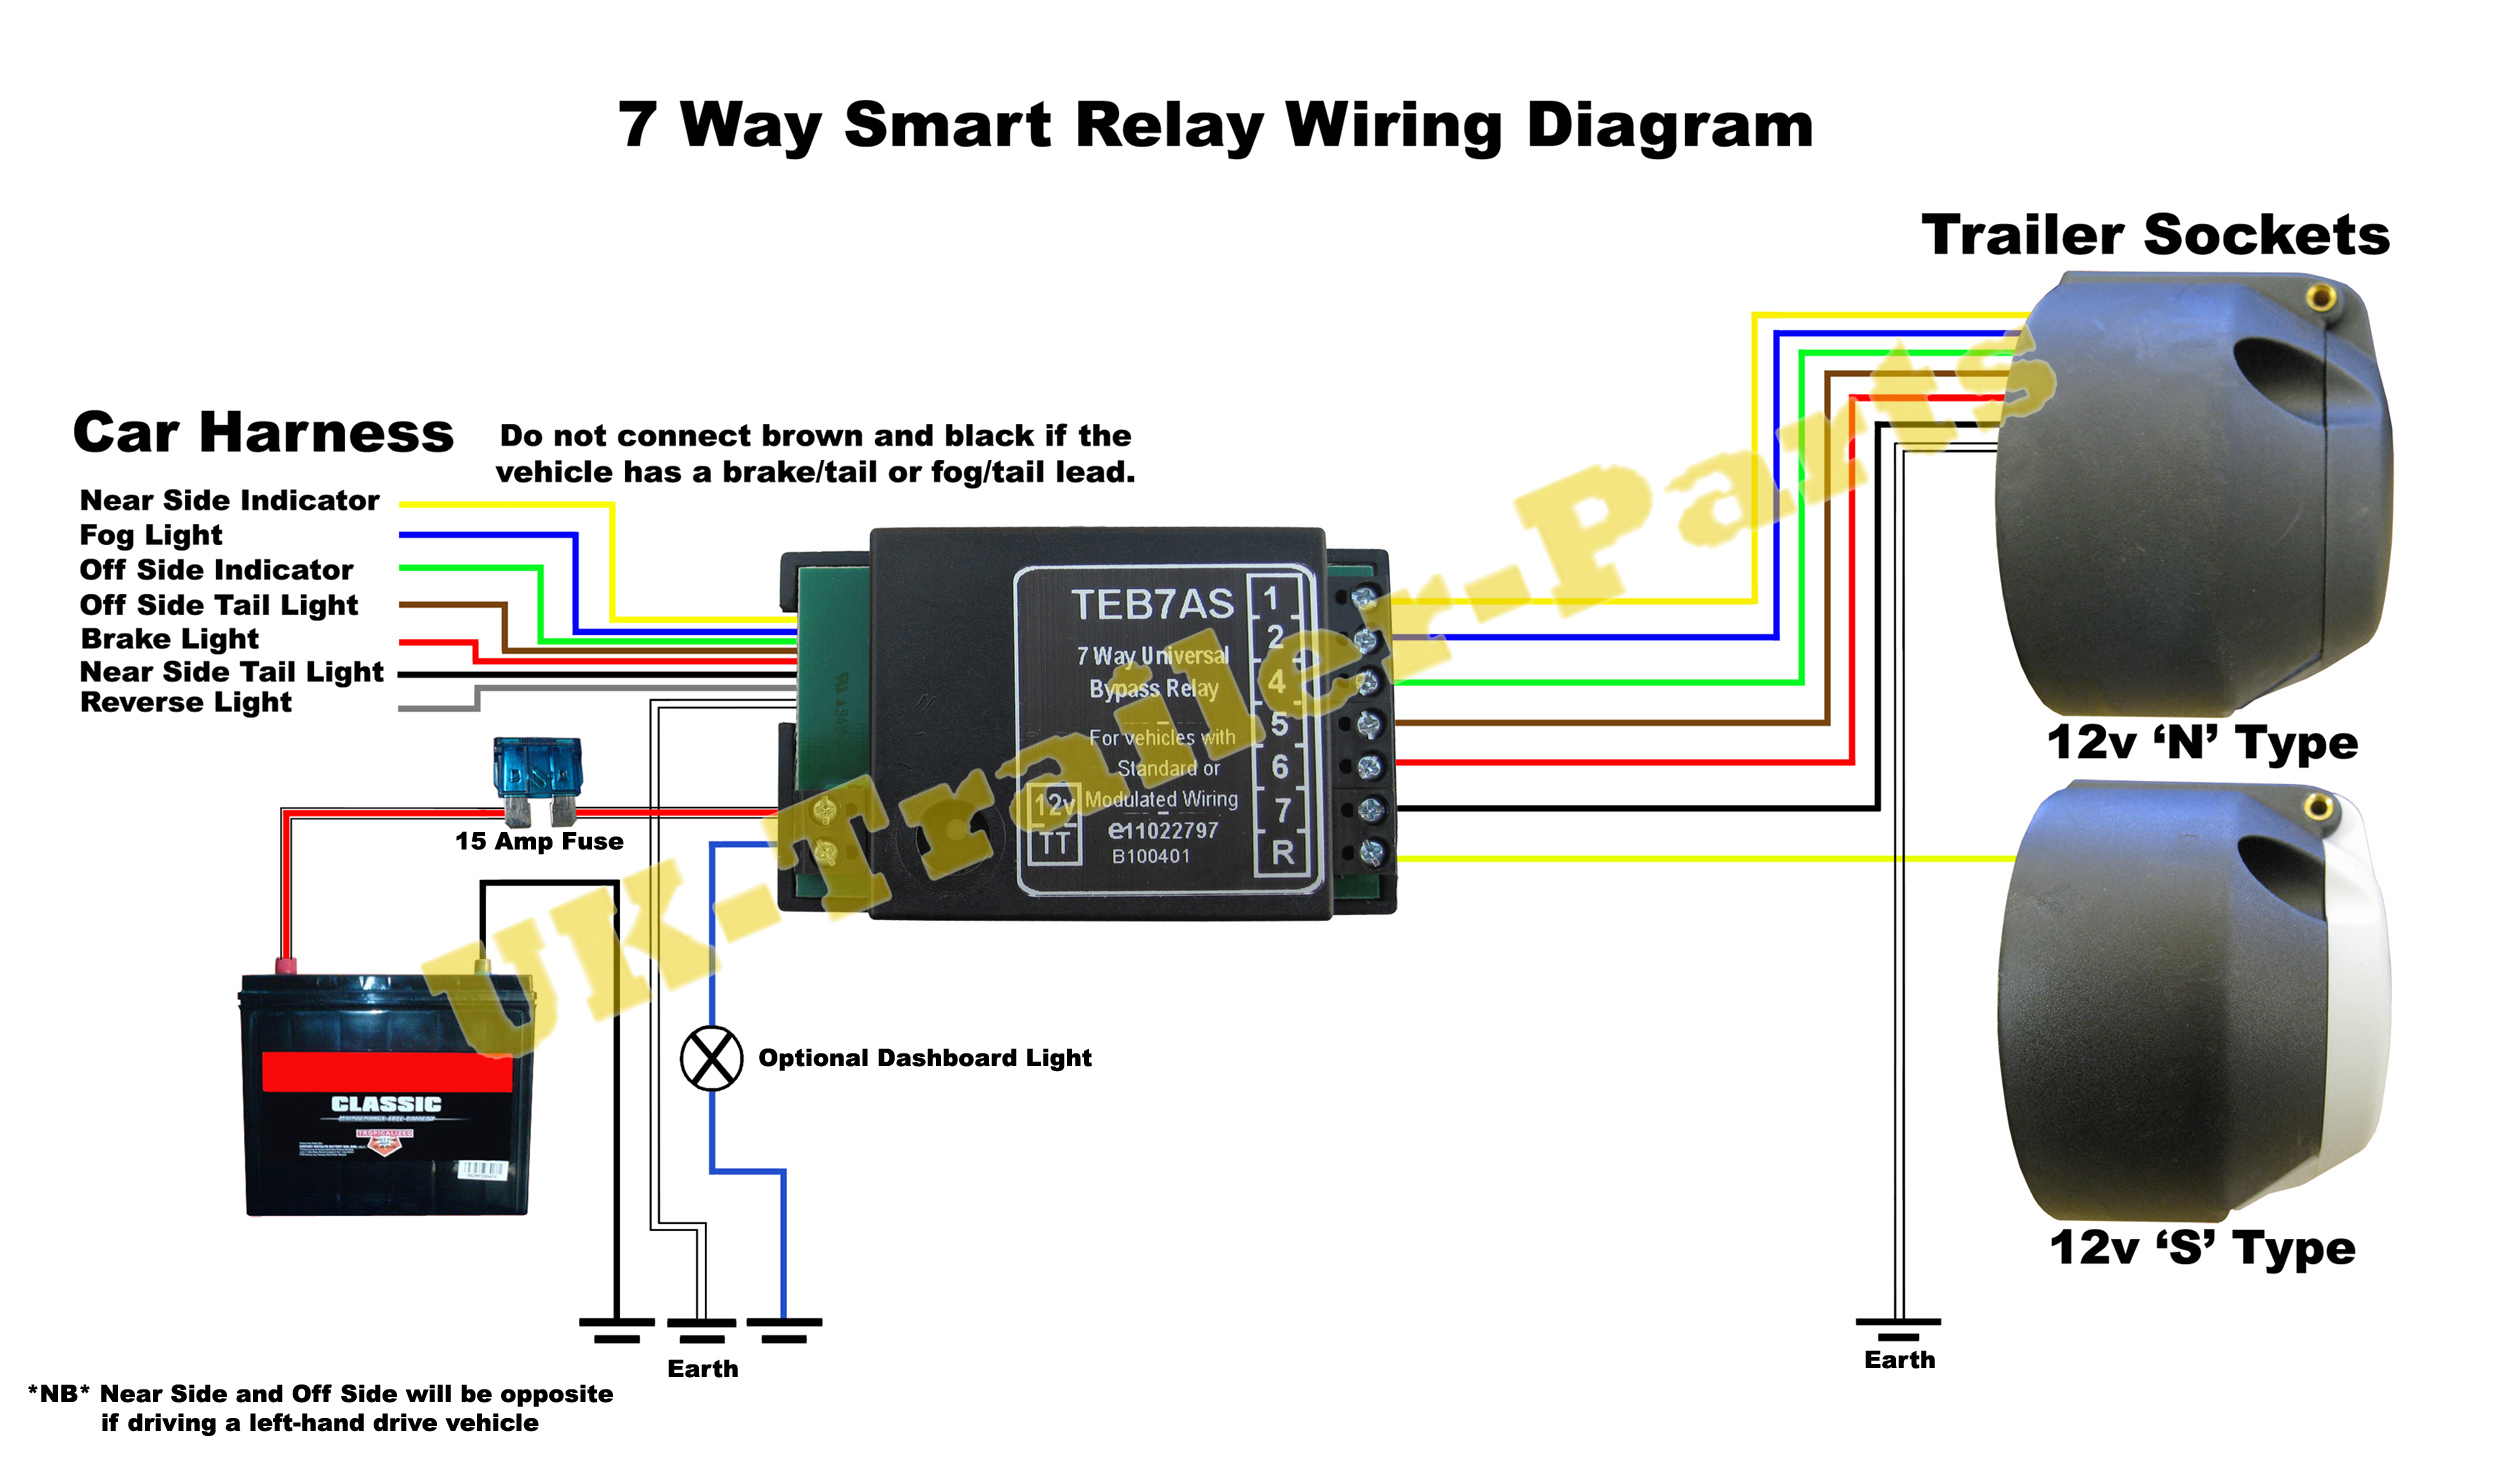 7 Way Universal Bypass Relay Wiring Diagram